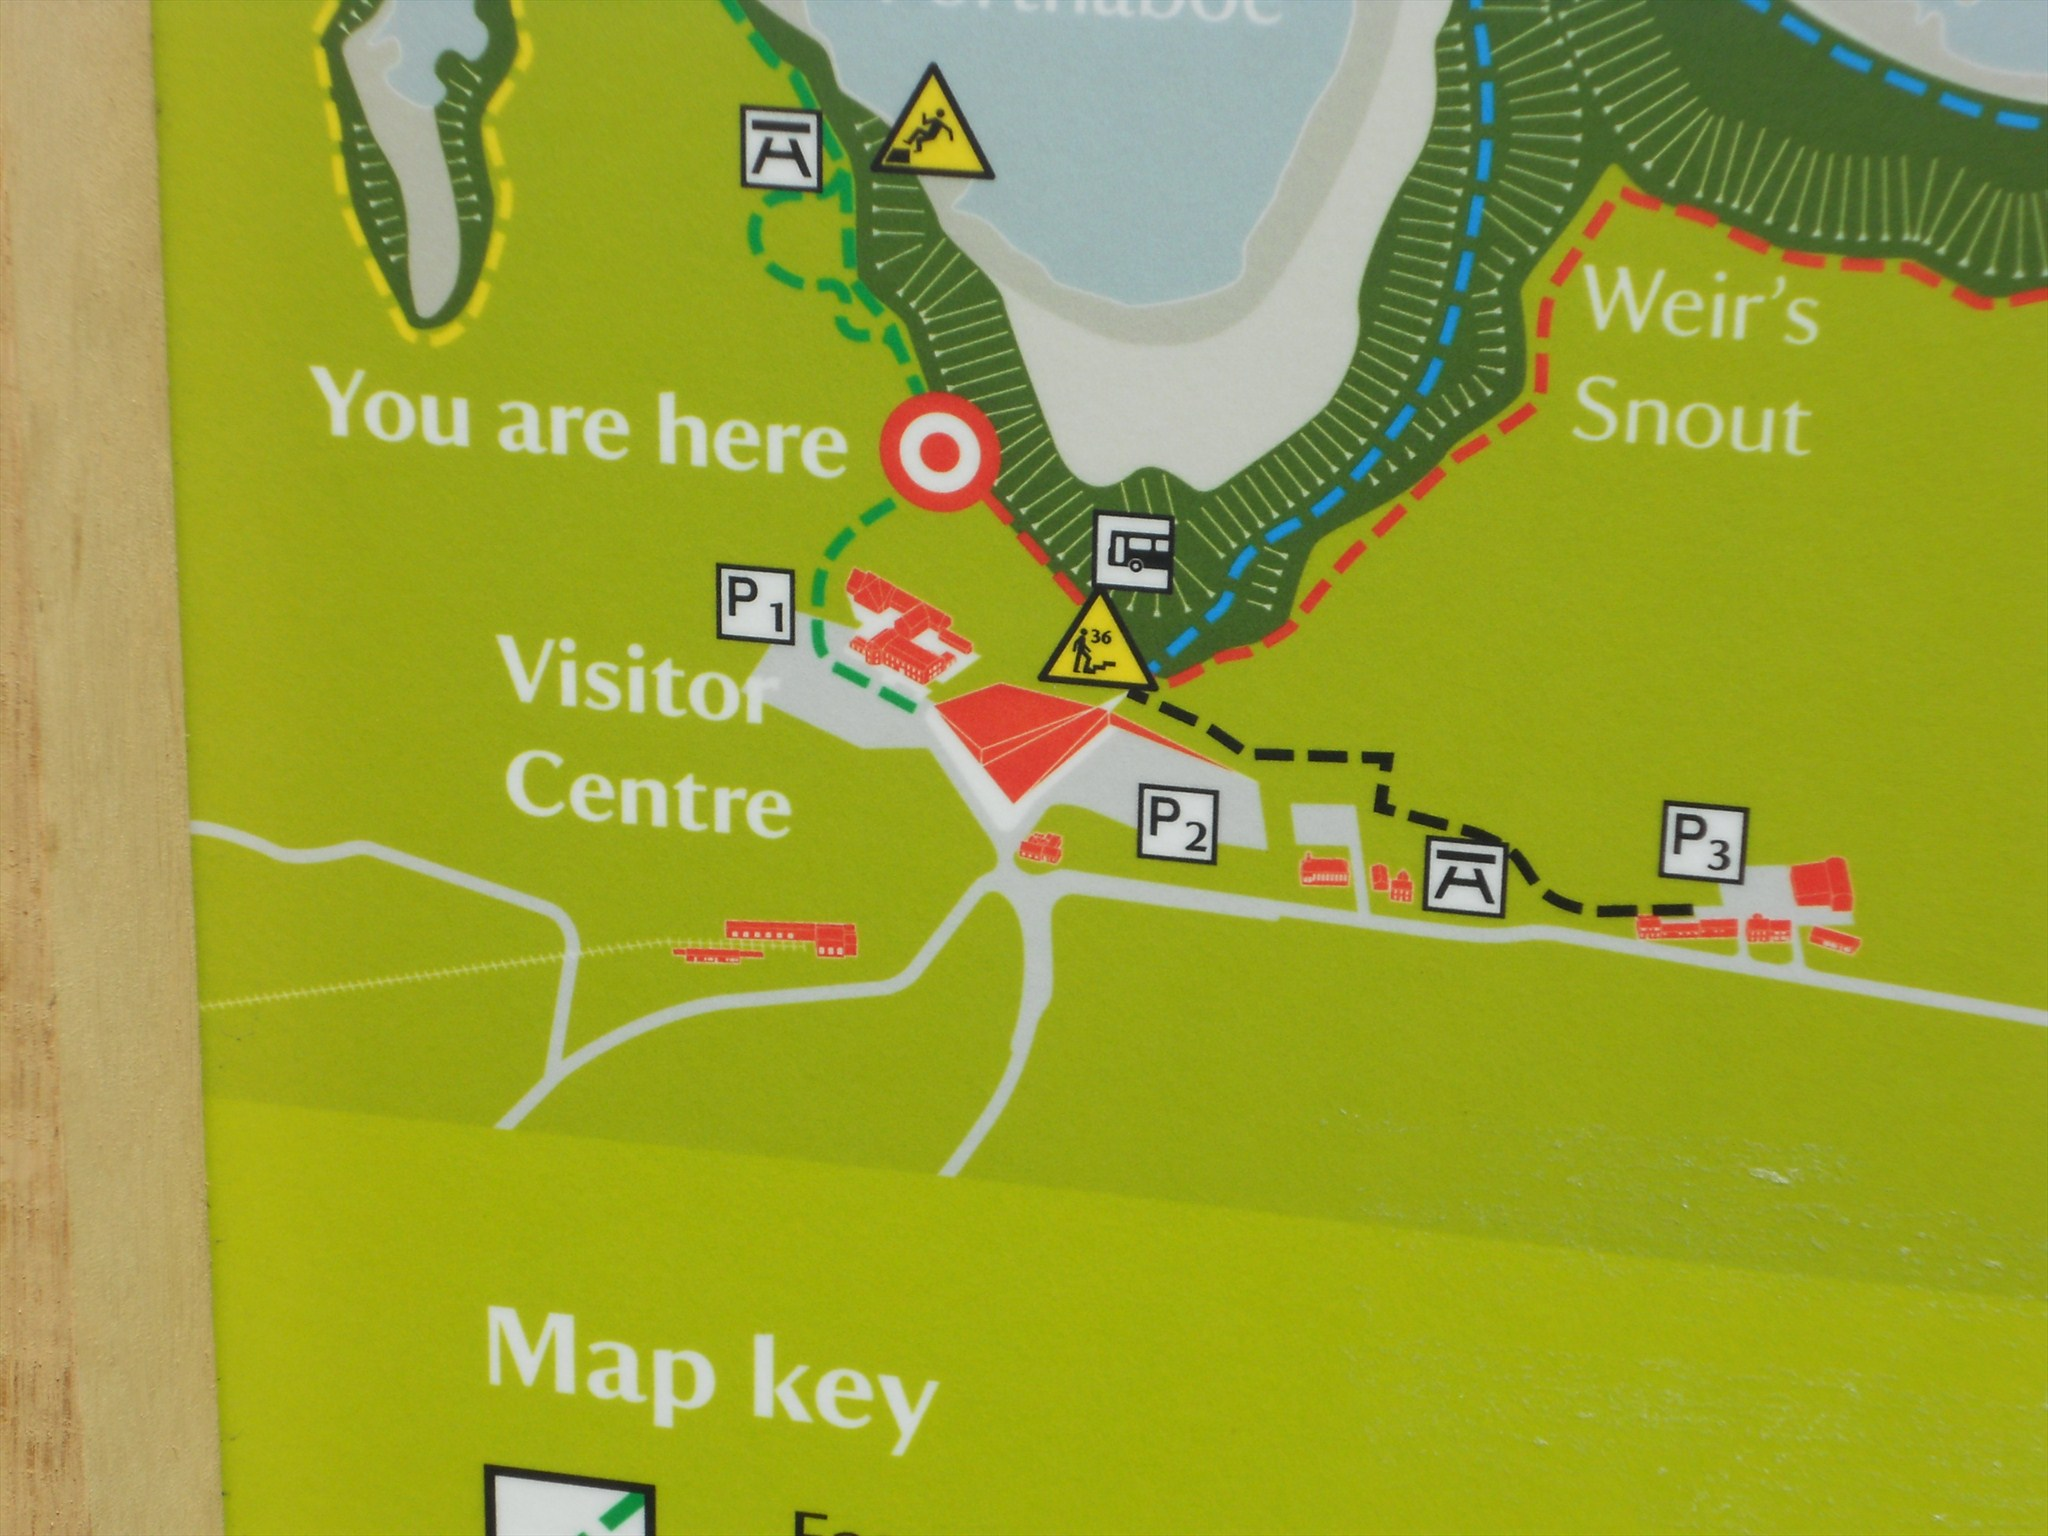 You Are Here Map at the Giant's Causeway Giant S Causeway Map on edinburgh castle map, fingal's cave map, great wall of china map, united kingdom map, english channel map, belfast map, giant causeway and rope bridge map, skellig michael map, machu picchu map, angkor wat map, you are here map, venice map, devils postpile national monument map, australia map, causeway coastal route map, carrick-a-rede rope bridge map, hadrian's wall map, leaning tower of pisa map, rock of gibraltar map, gros morne national park map,